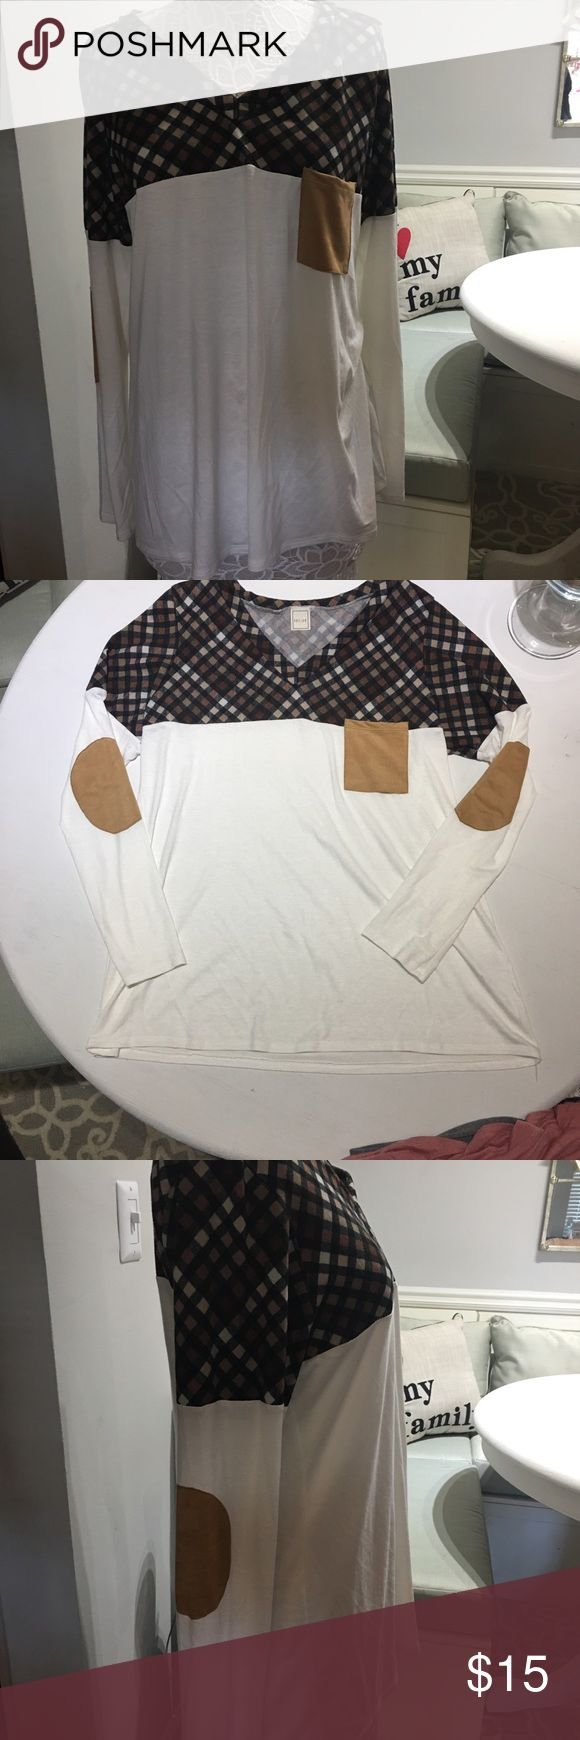 NWOT Plaid & cream long sleeve top w/elbow pads Fits 1-2 sizes smaller than size listed (3XL) not meant to be baggy. Love it, it just doesn't fit my chest at the angle I wanted. Not too tight though, very proportionate. Heshe Tops Tunics